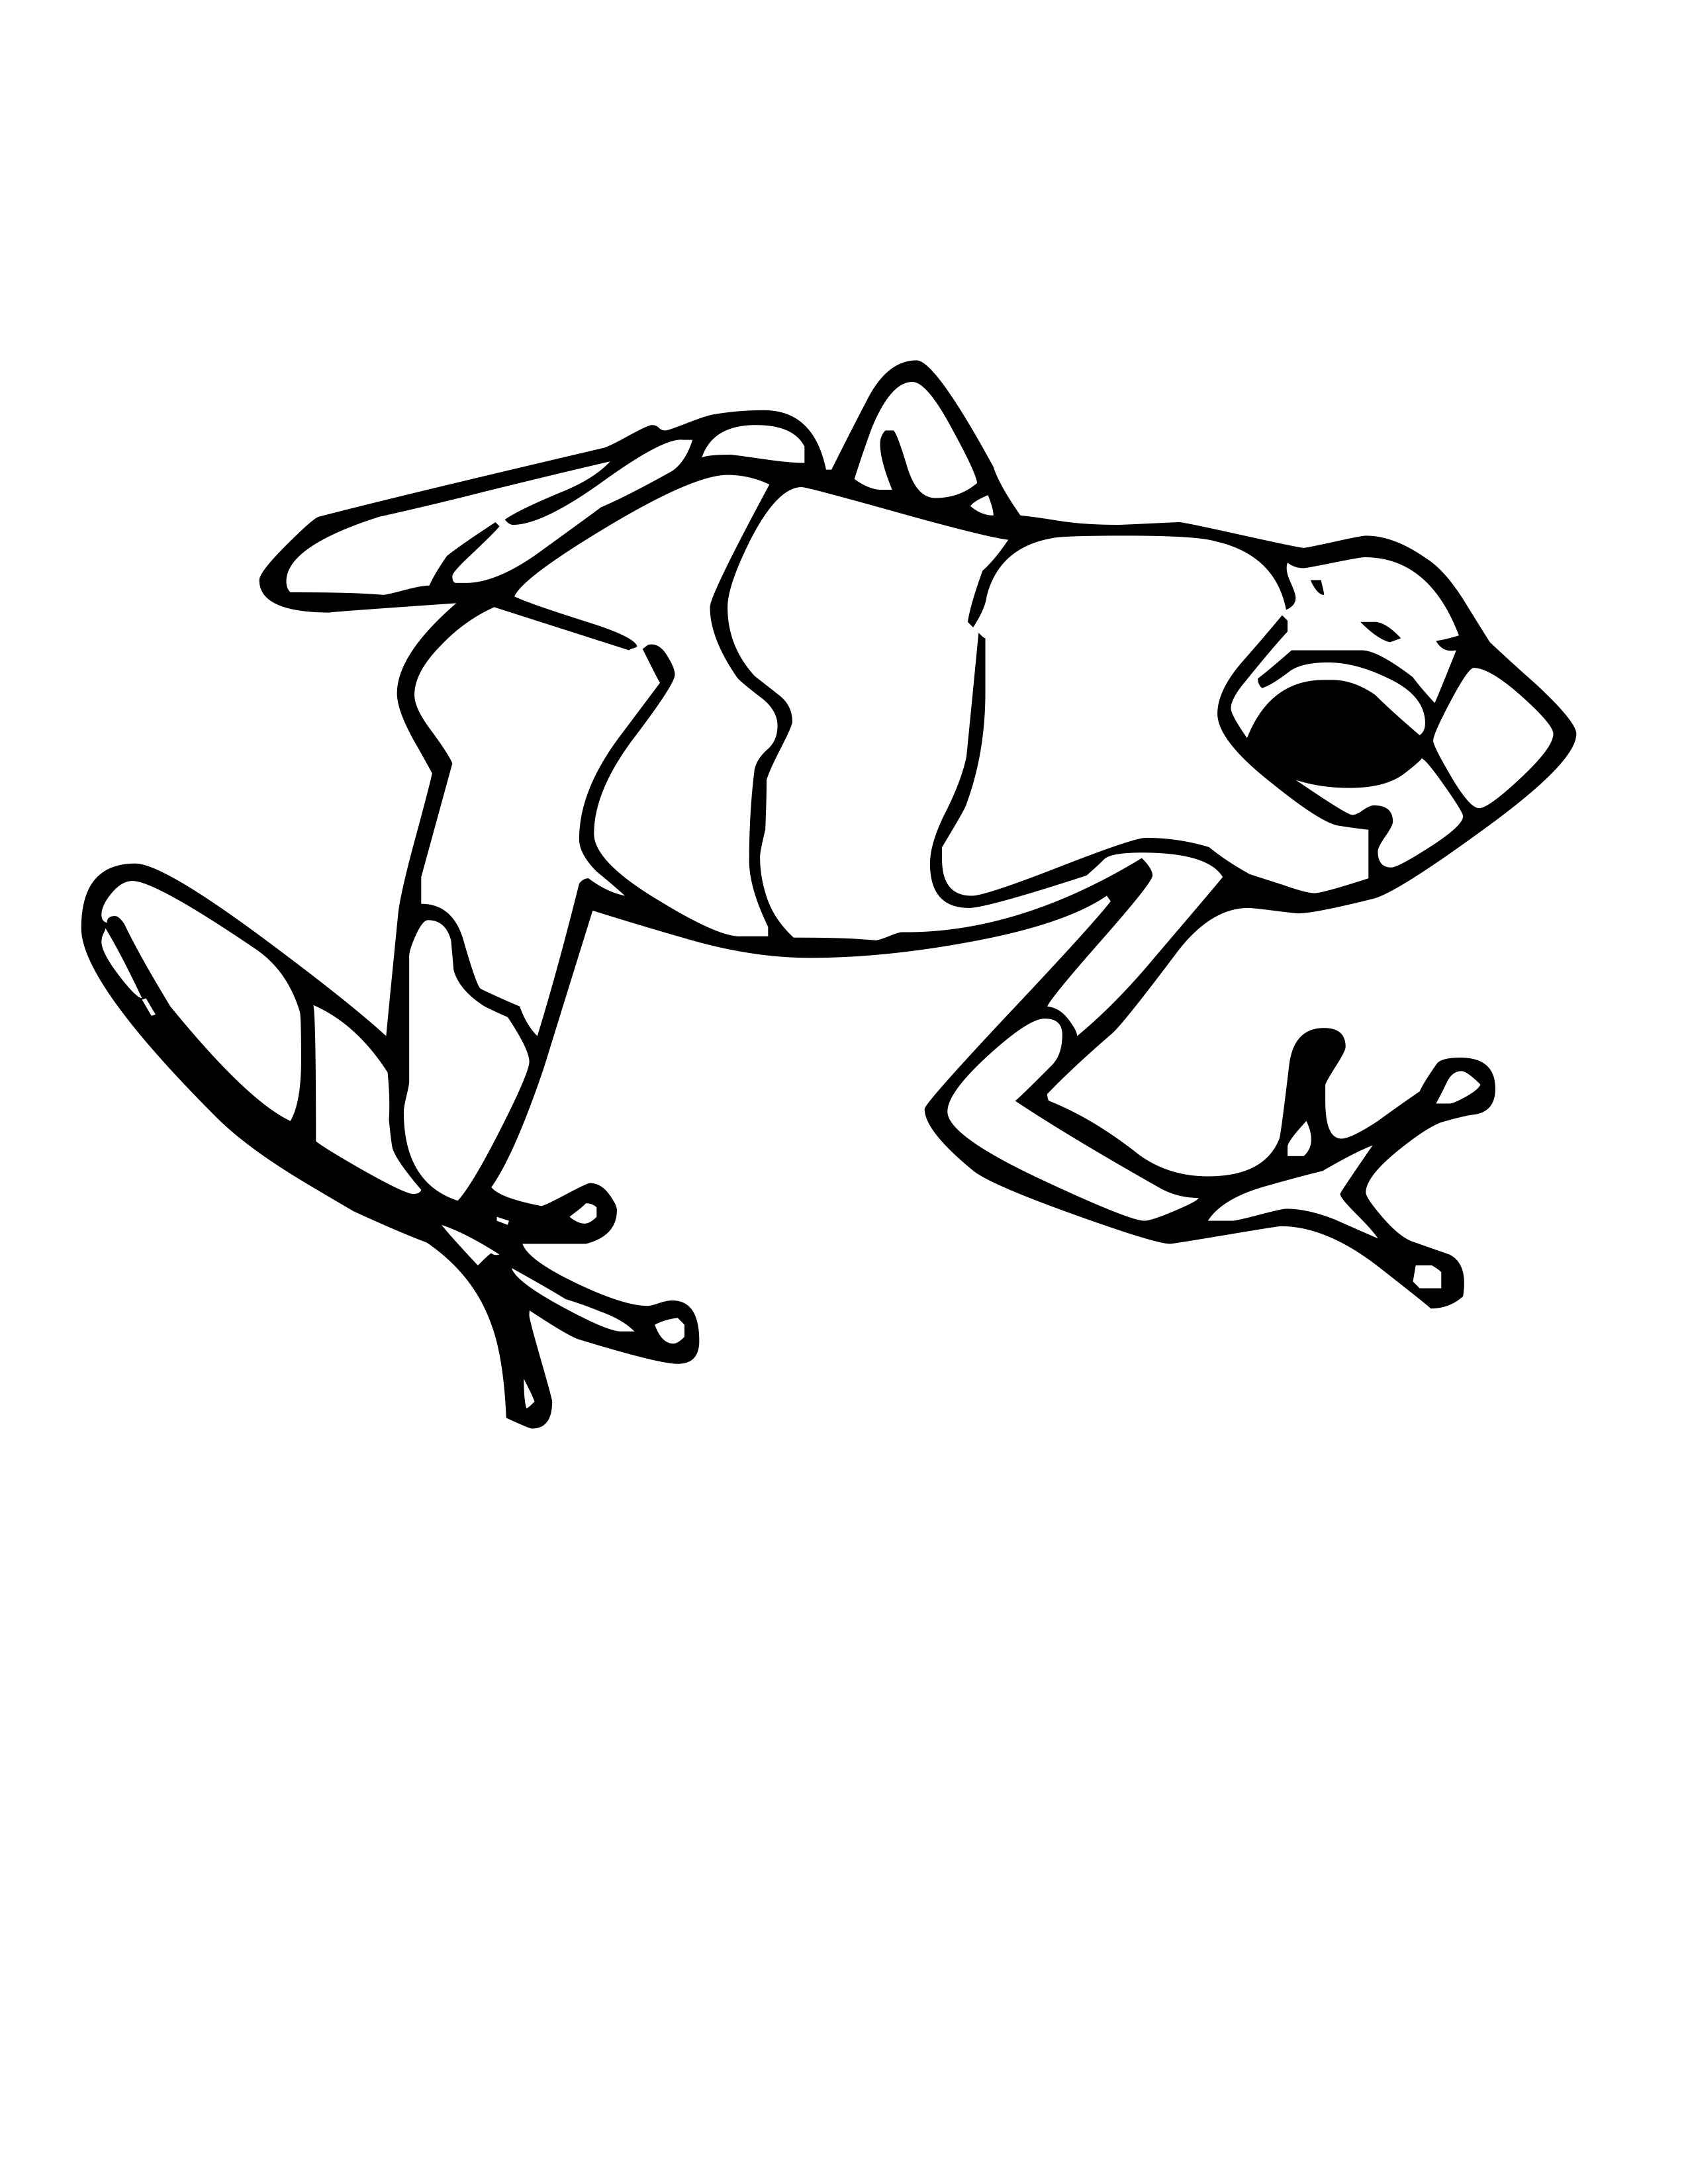 2550x3300 Fresh Poison Dart Frog Coloring Pages Design Free Coloring Book